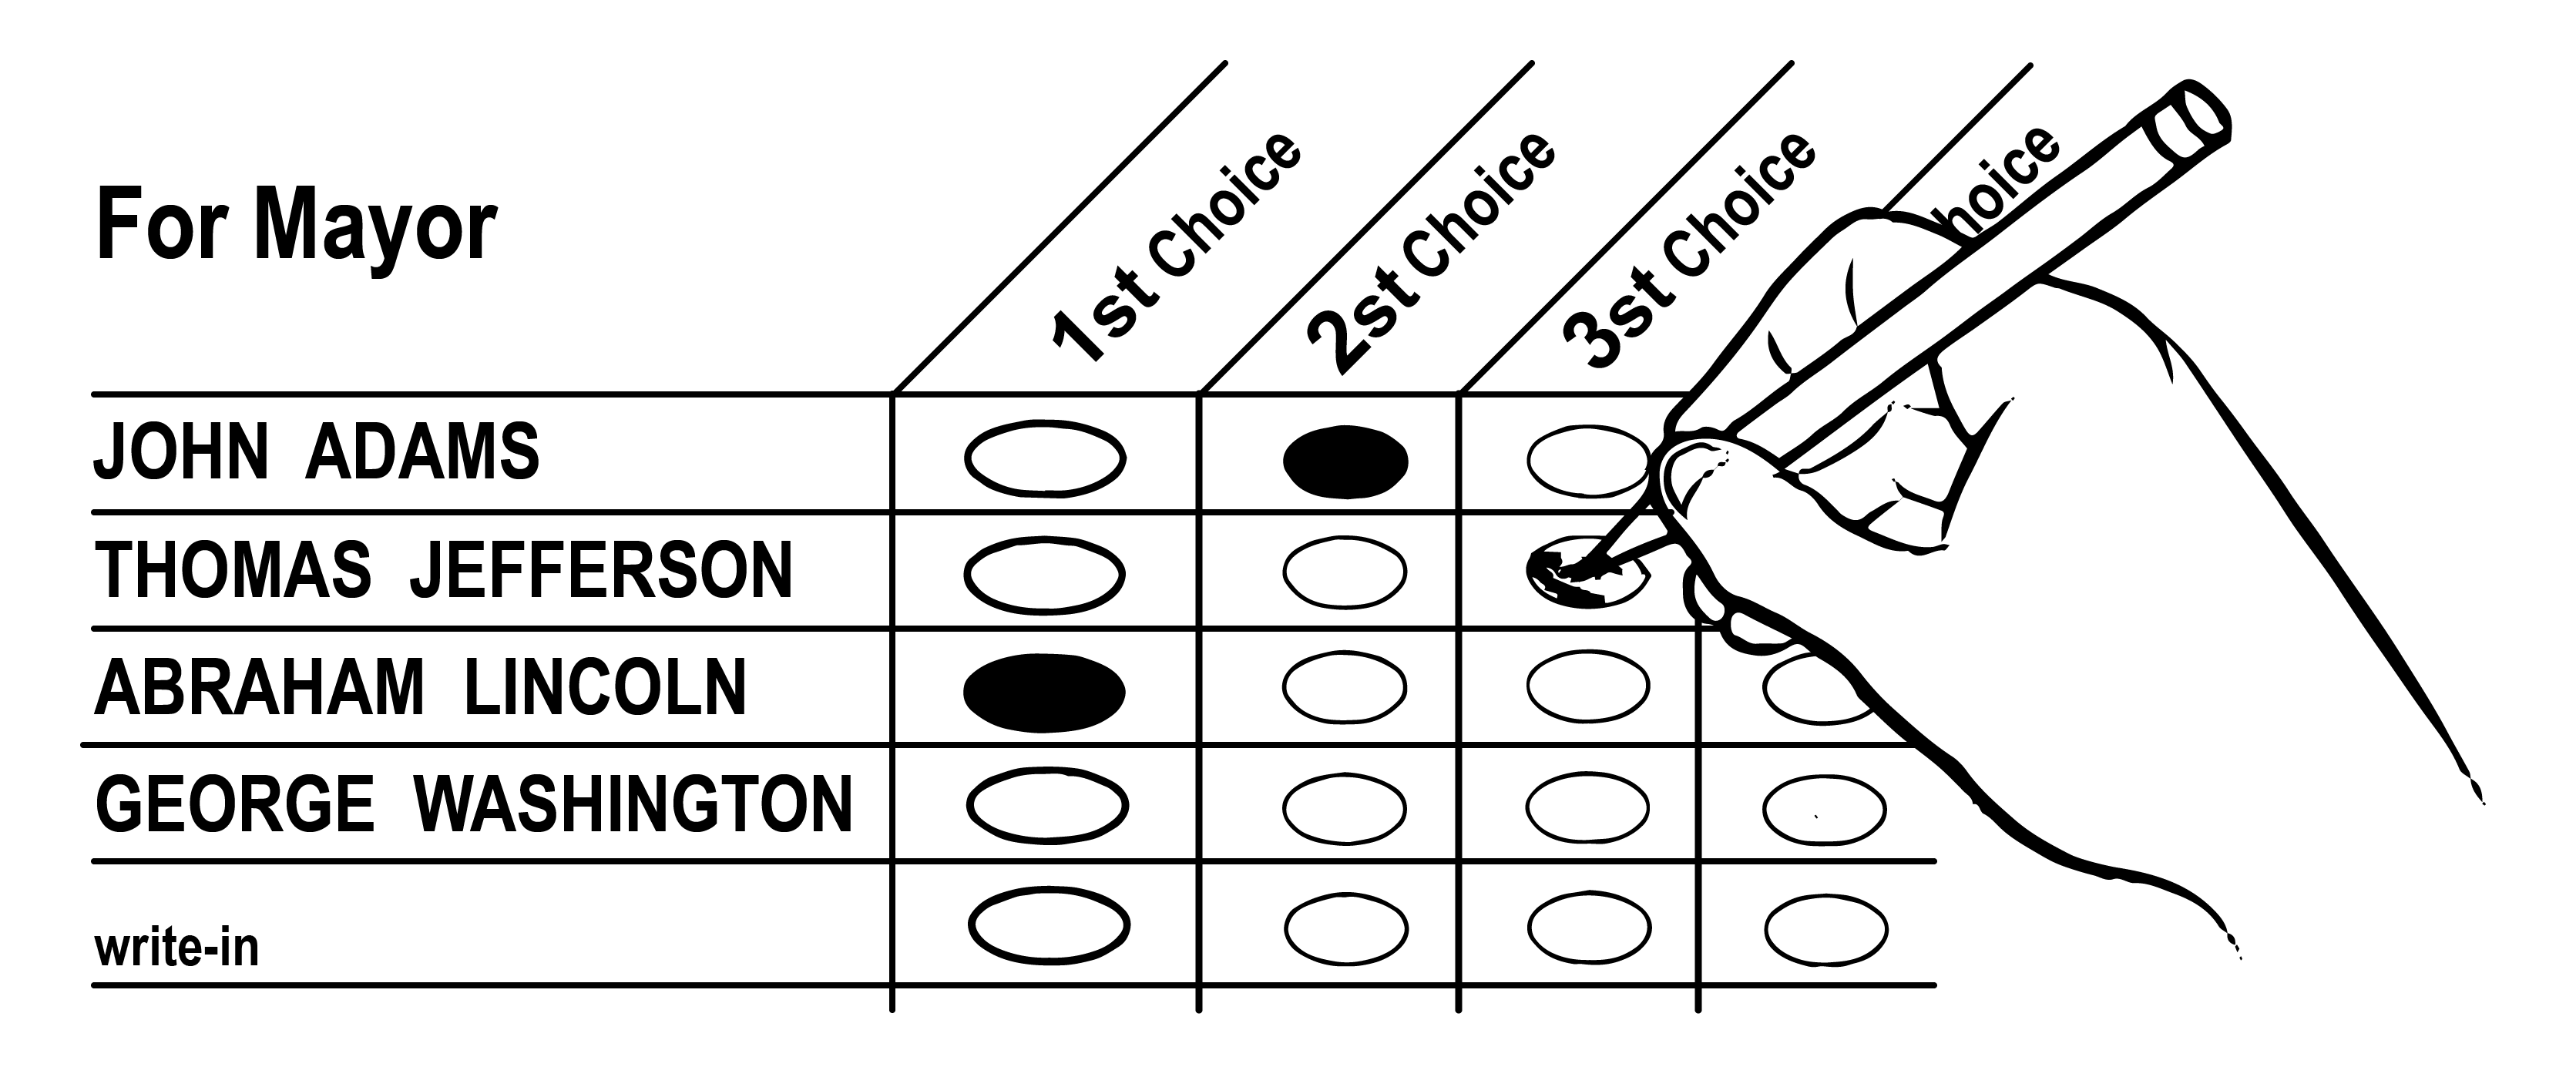 Politics broken? Enable ranked choice voting